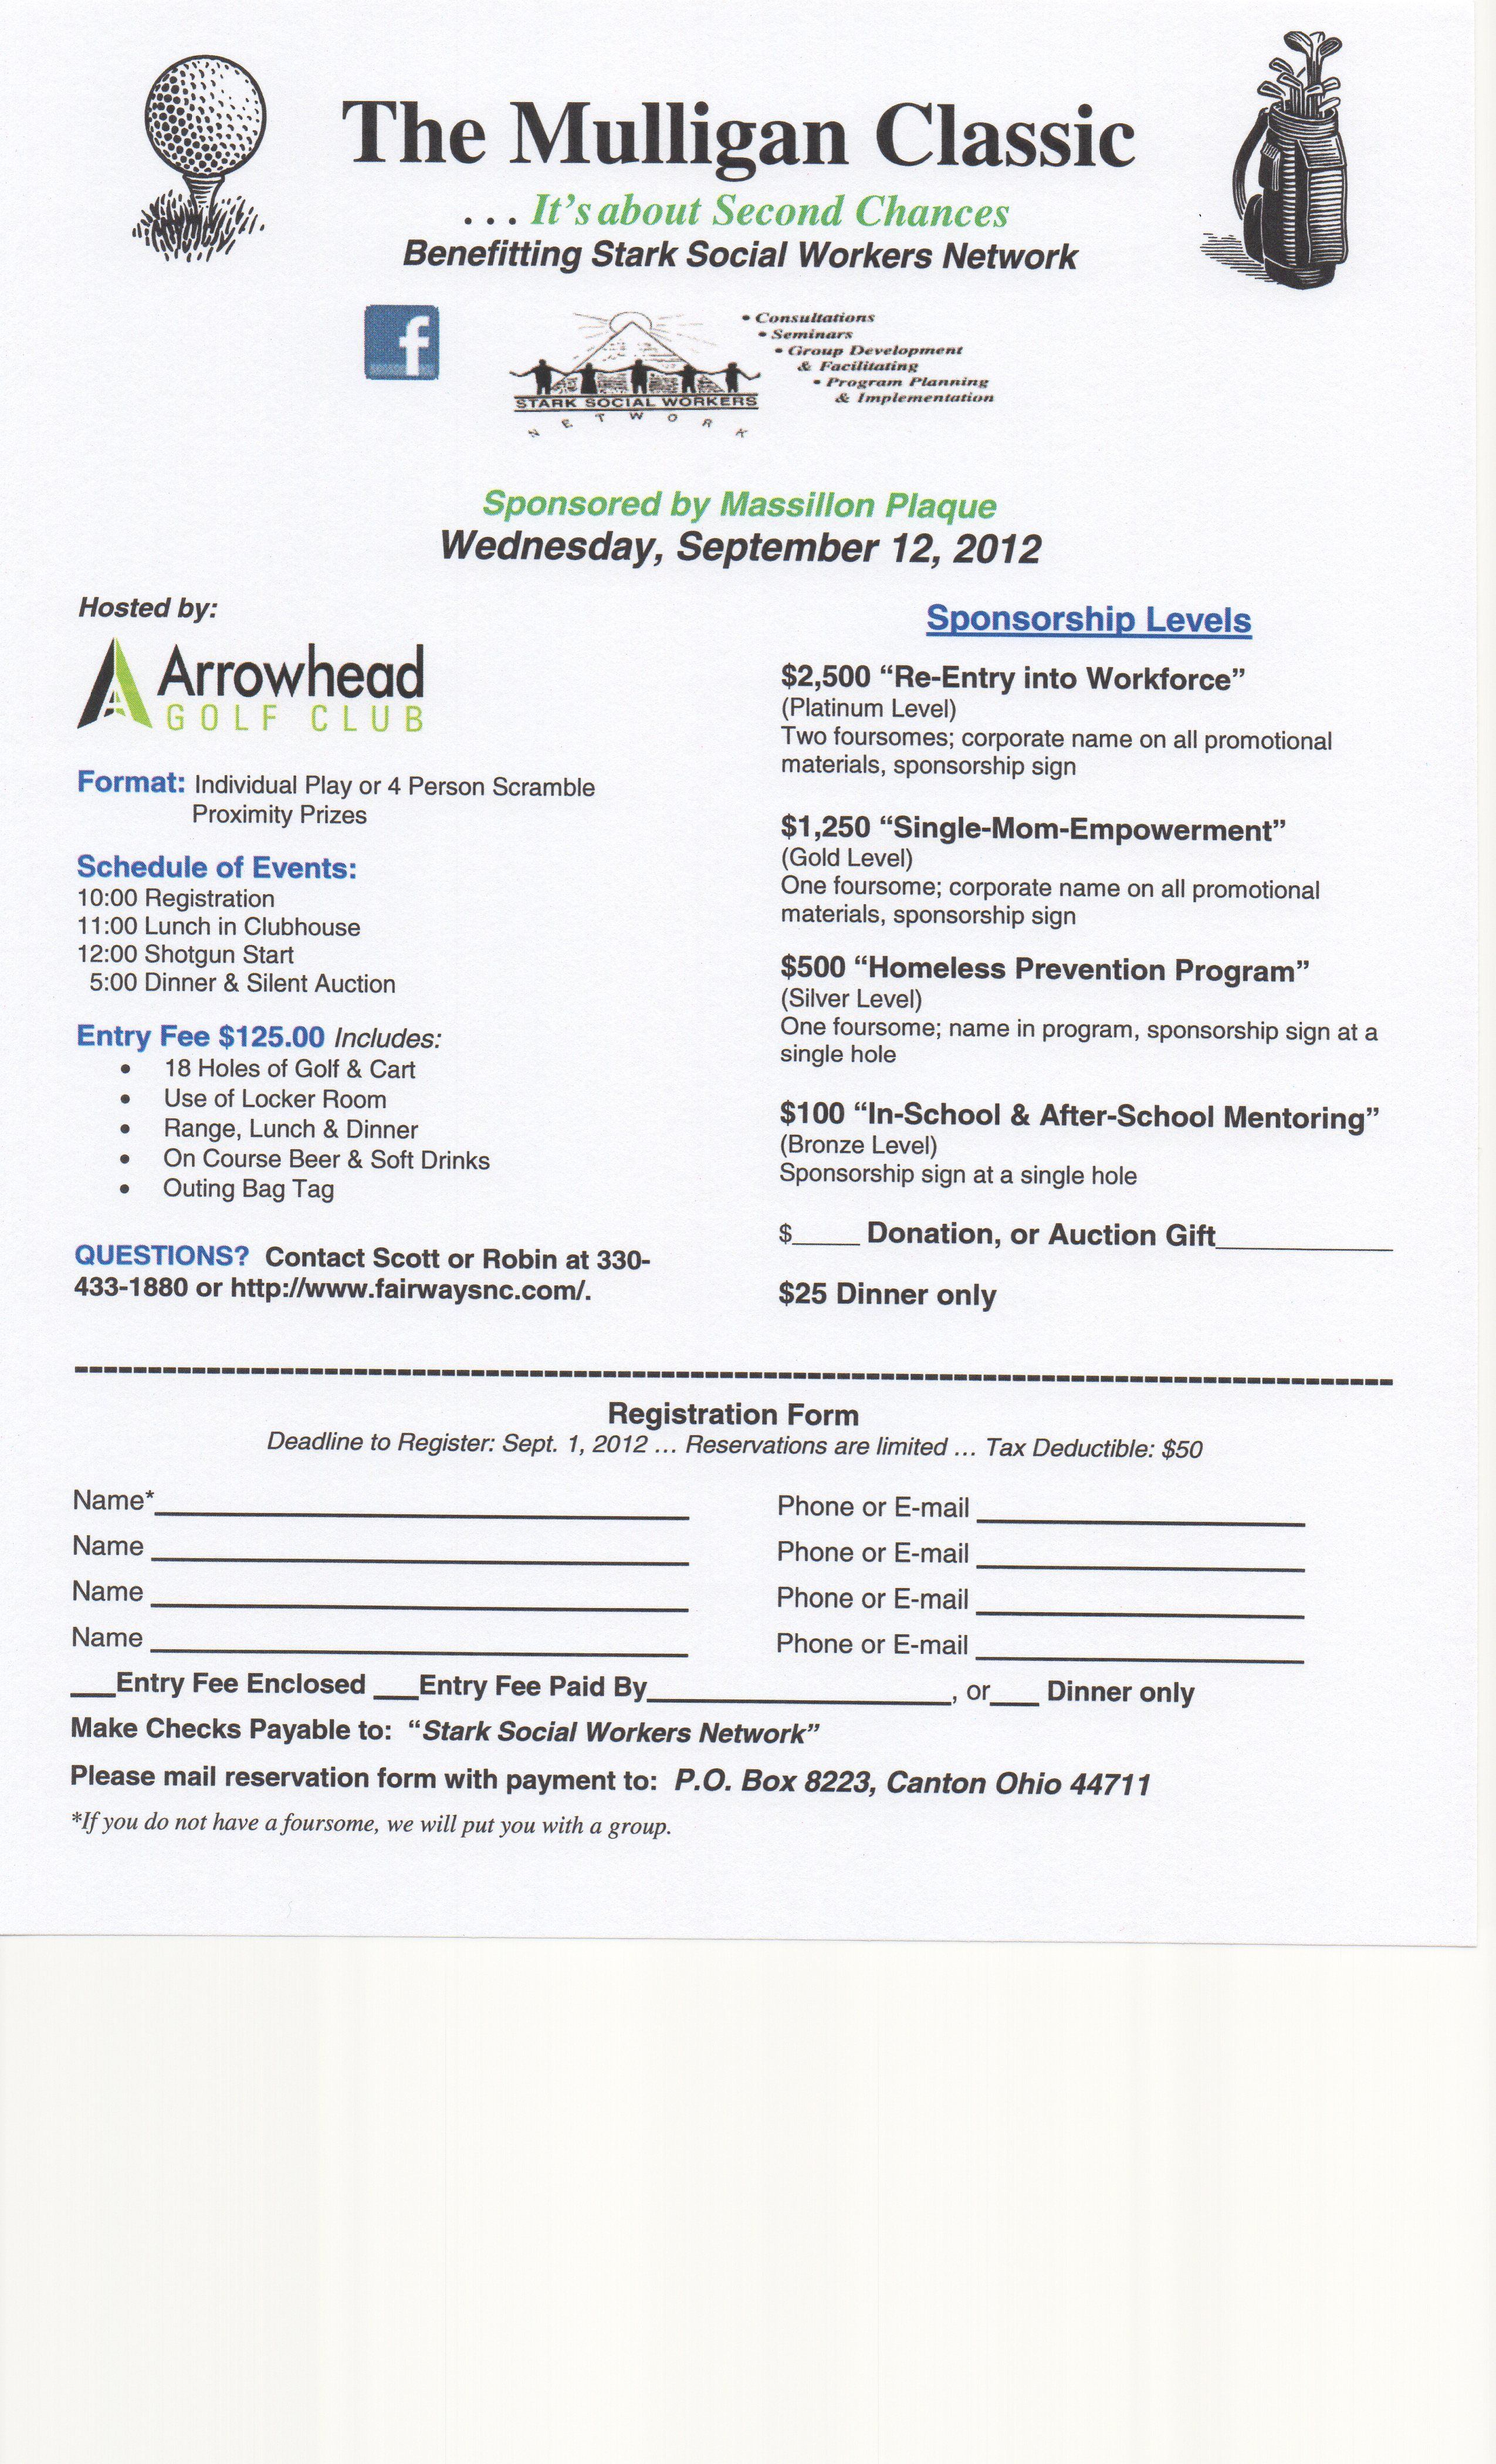 Golf tournament Donation Letter Template - I M On A Mittee Planning something Called the Mulligan Classic